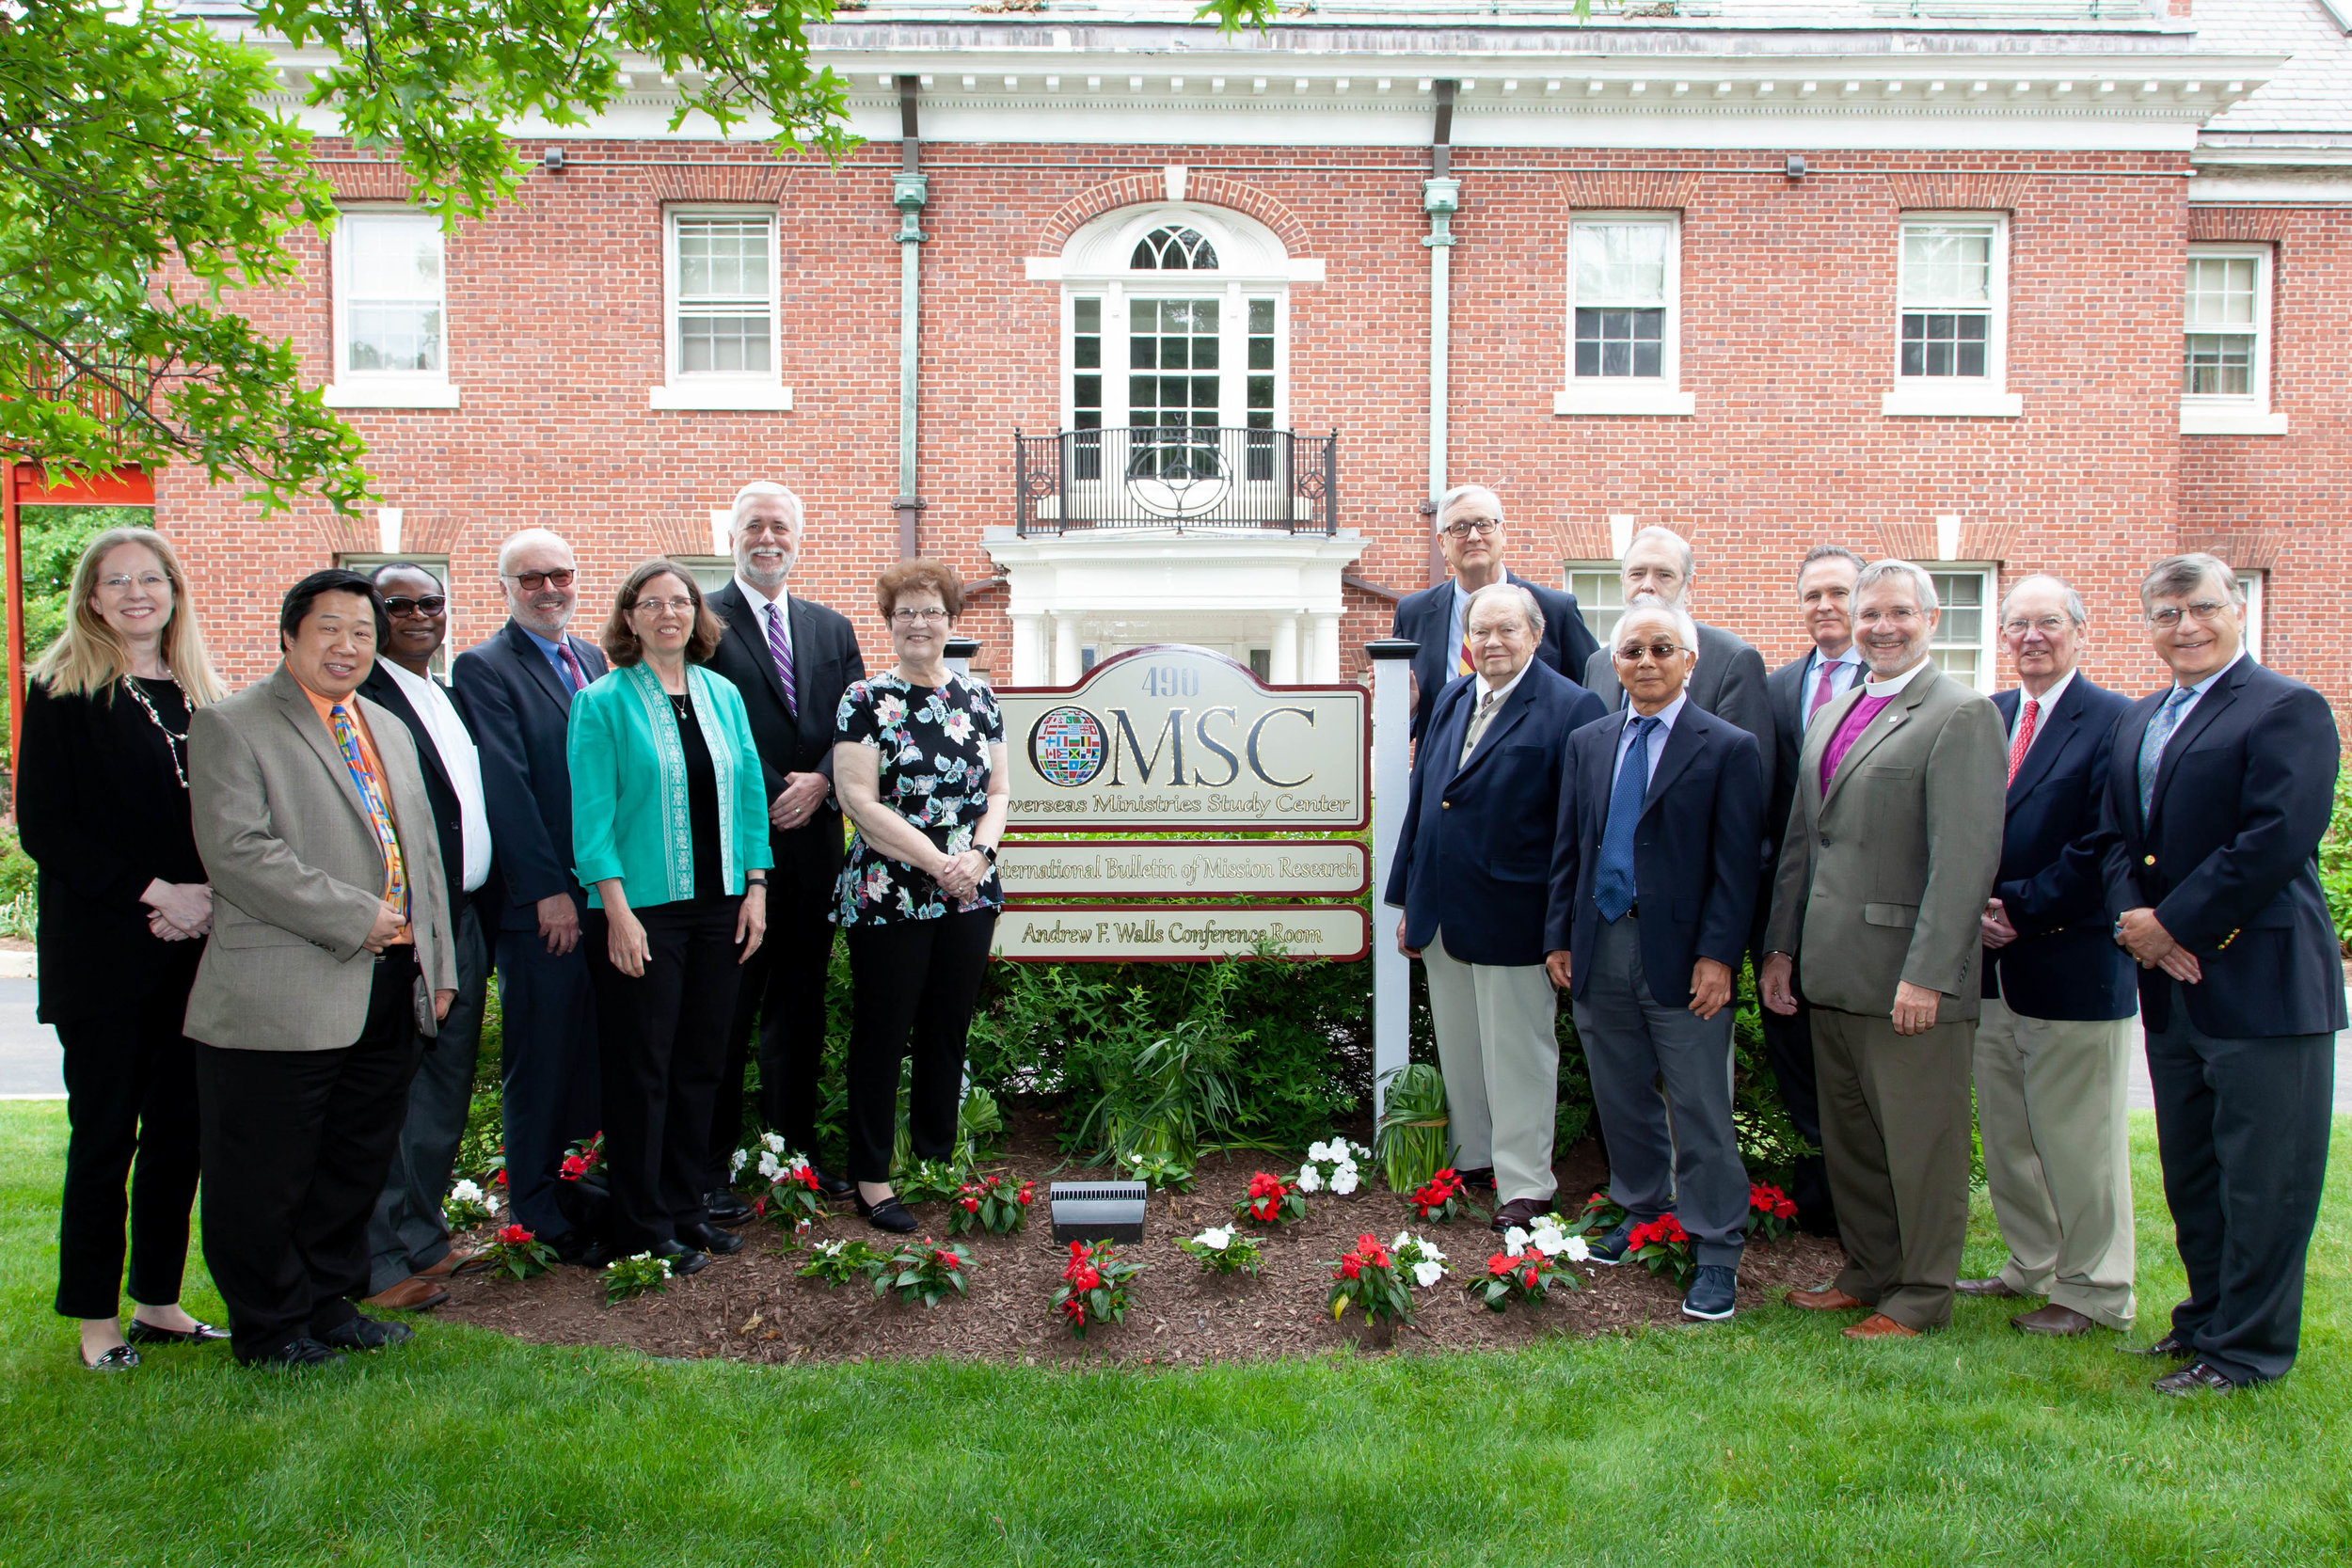 OMSC TRUSTEES CELEBRATE NEW PARTNERSHIP WITH PTS